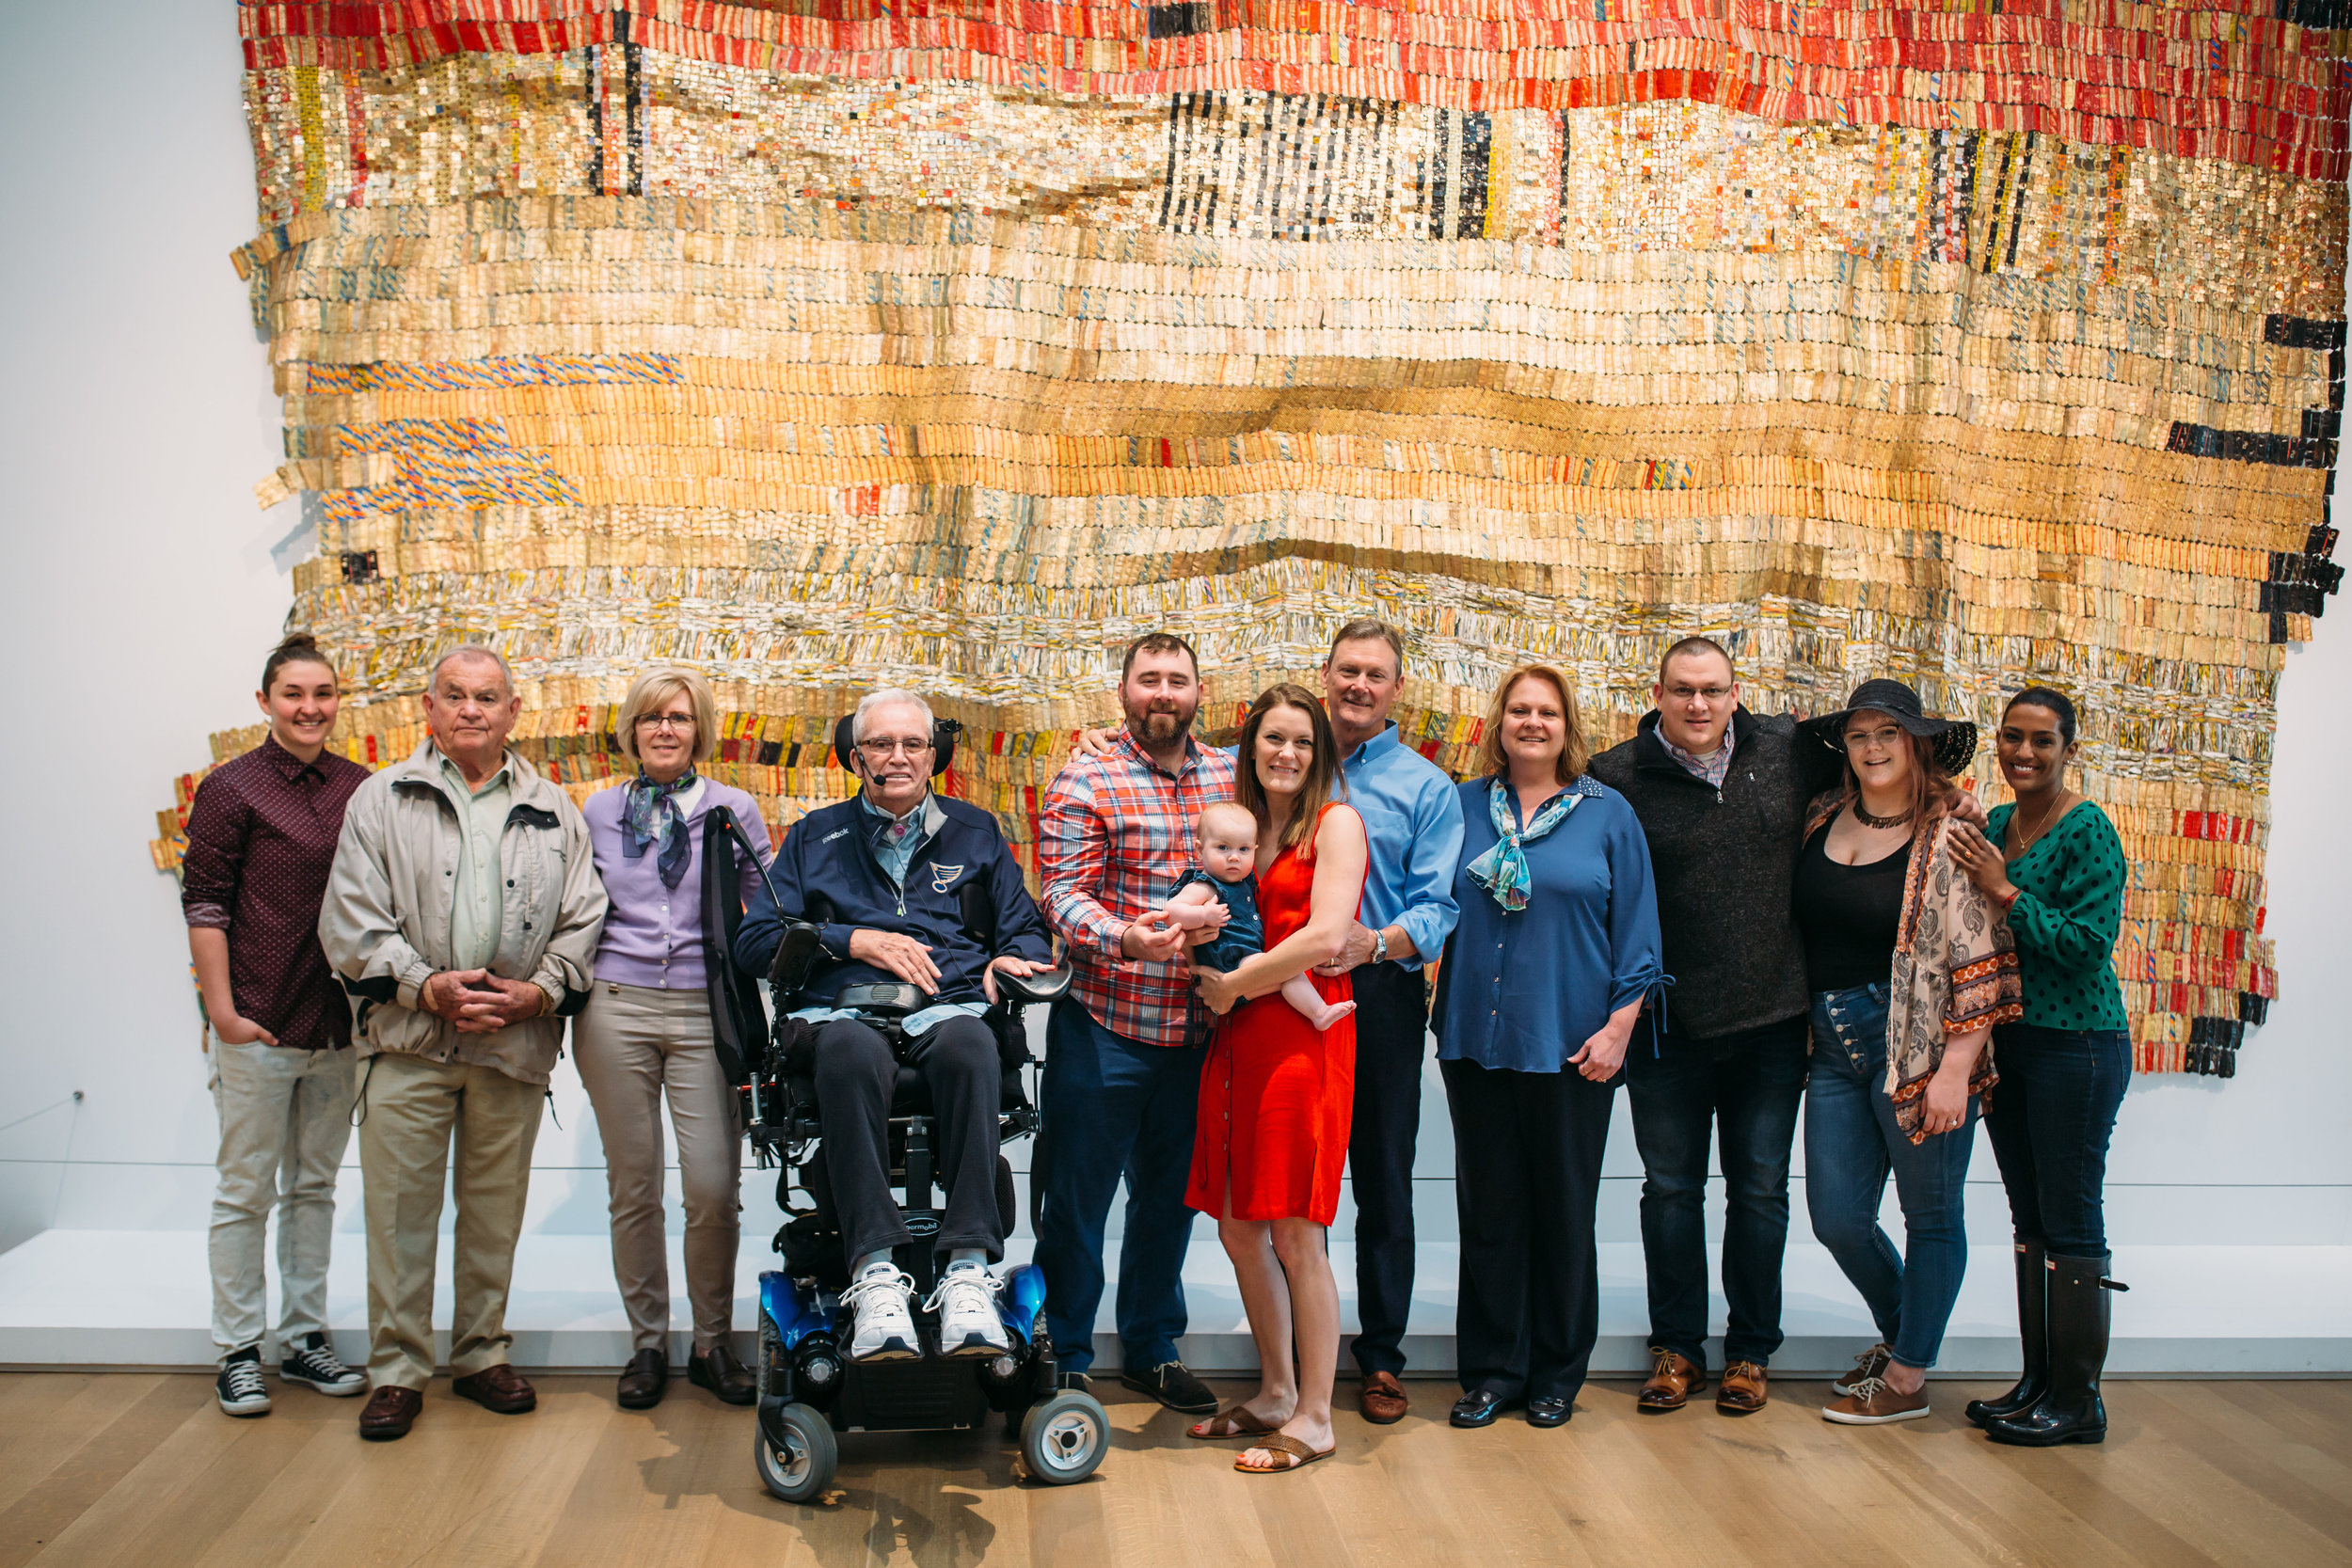 Stephanie and her family Mother's Day weekend 2019 at the St Louis Art Museum